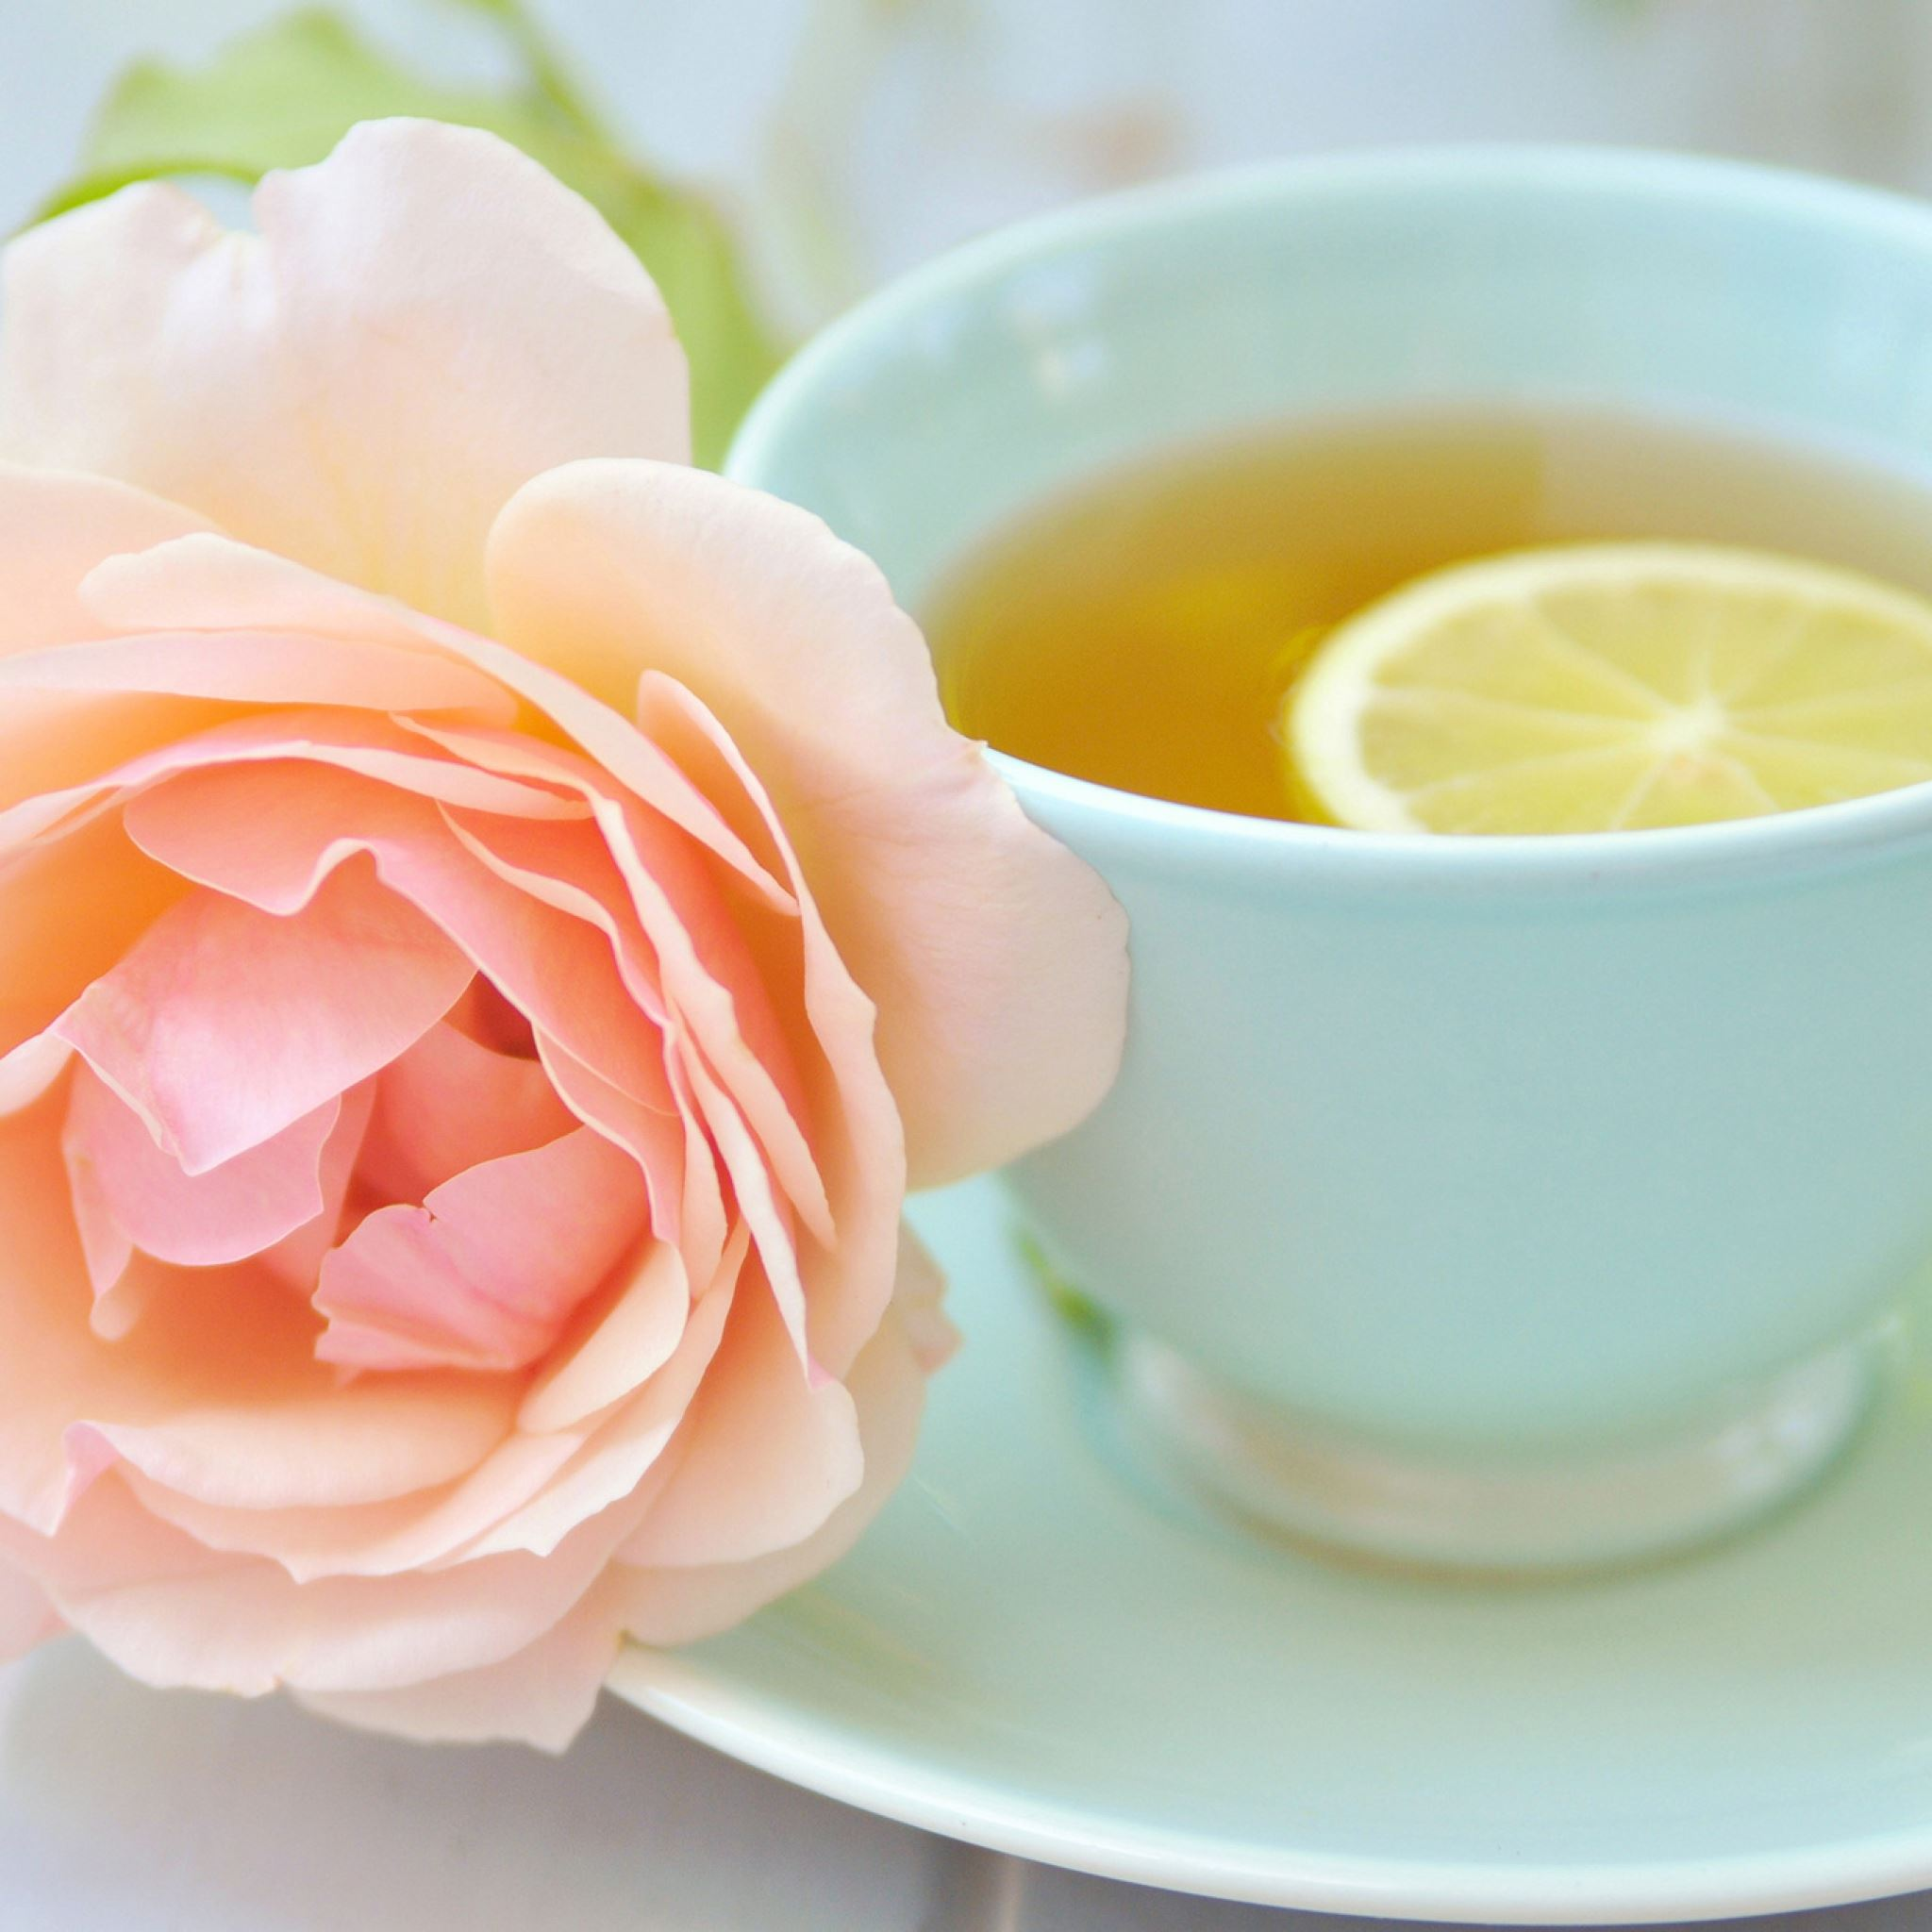 Tea Cup Lemon Rose iPad Air wallpaper